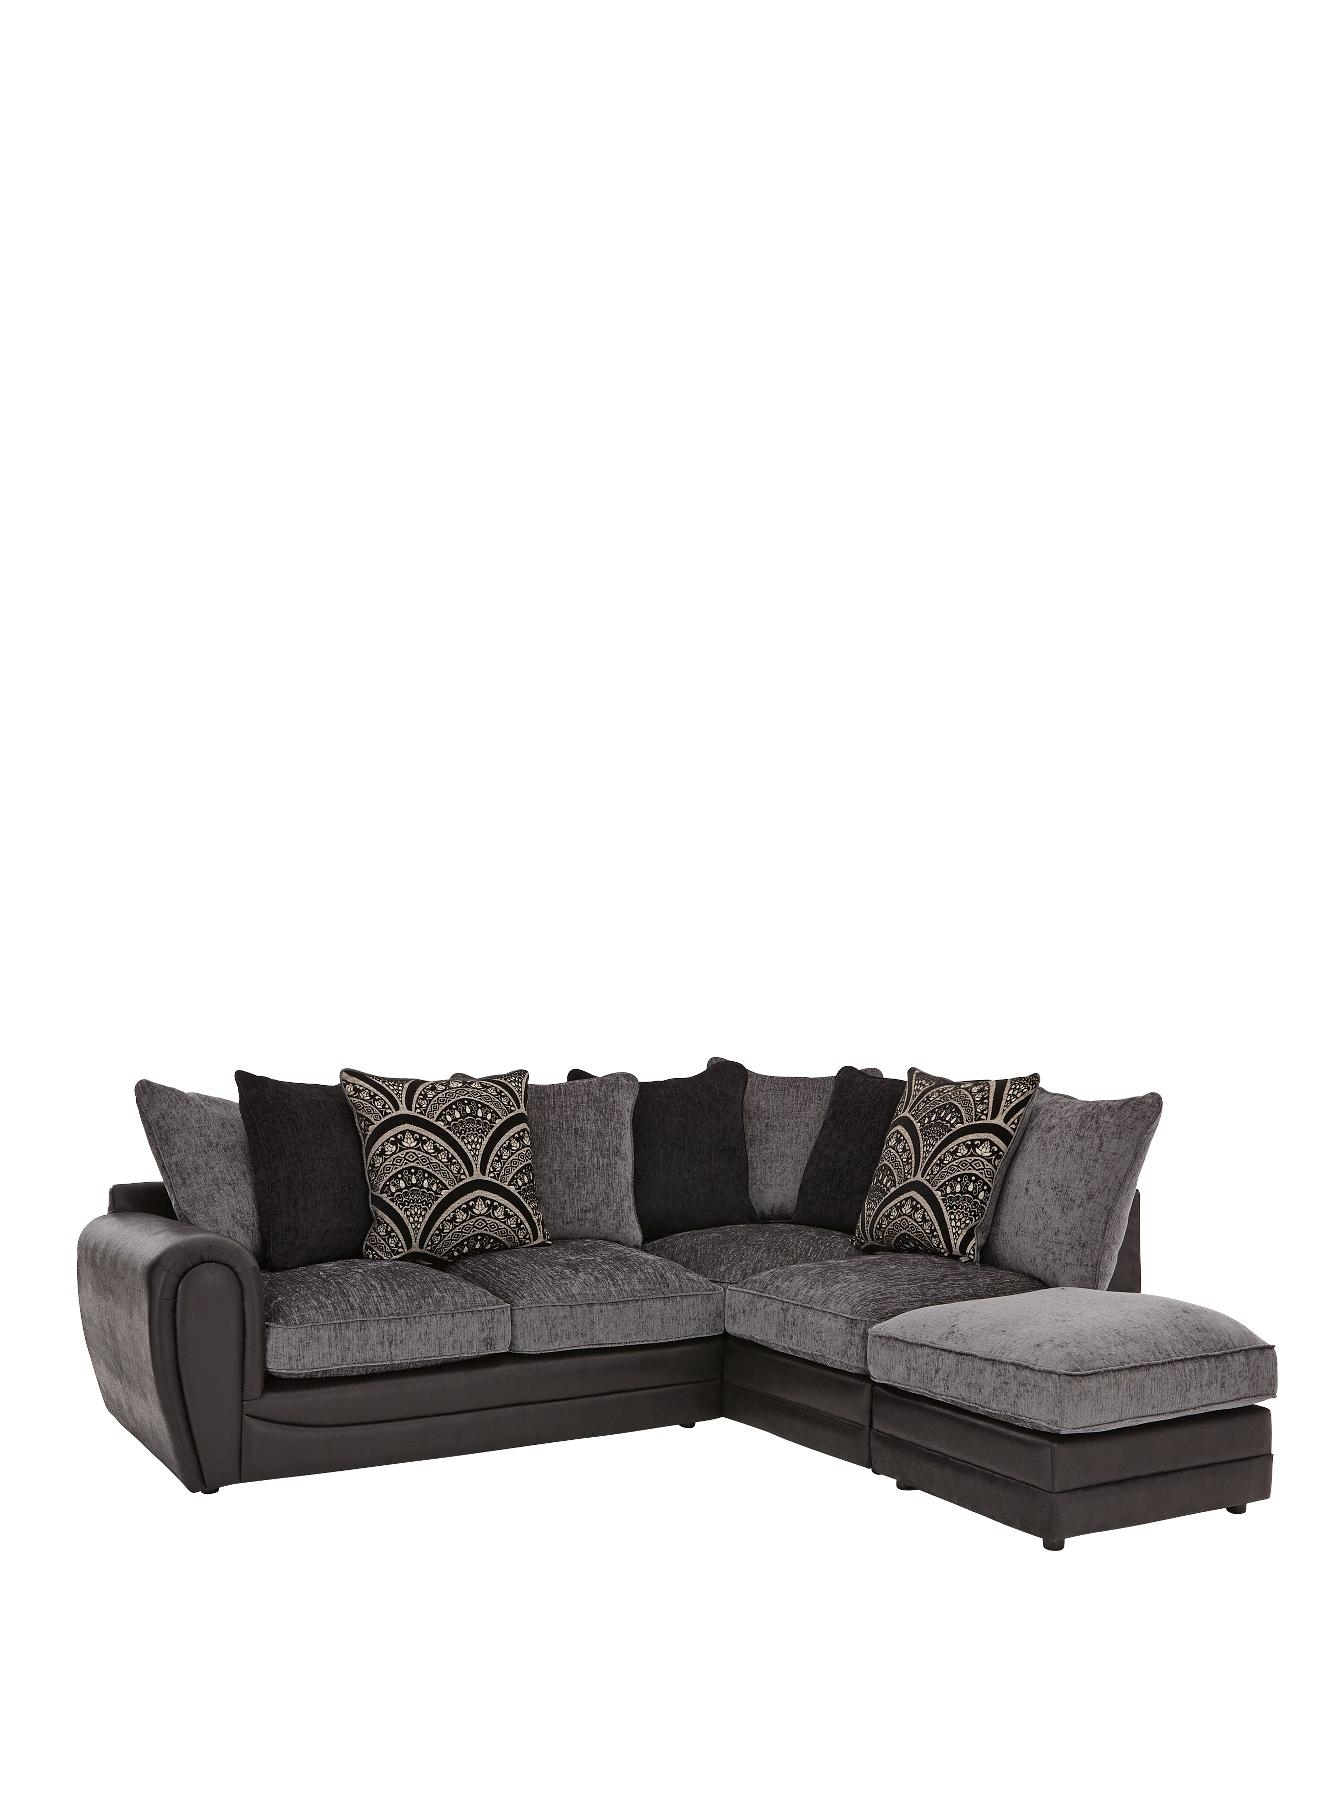 Gatsby Right Hand Single Arm Corner Chaise and Footstool, Grey,Black,Chocolate